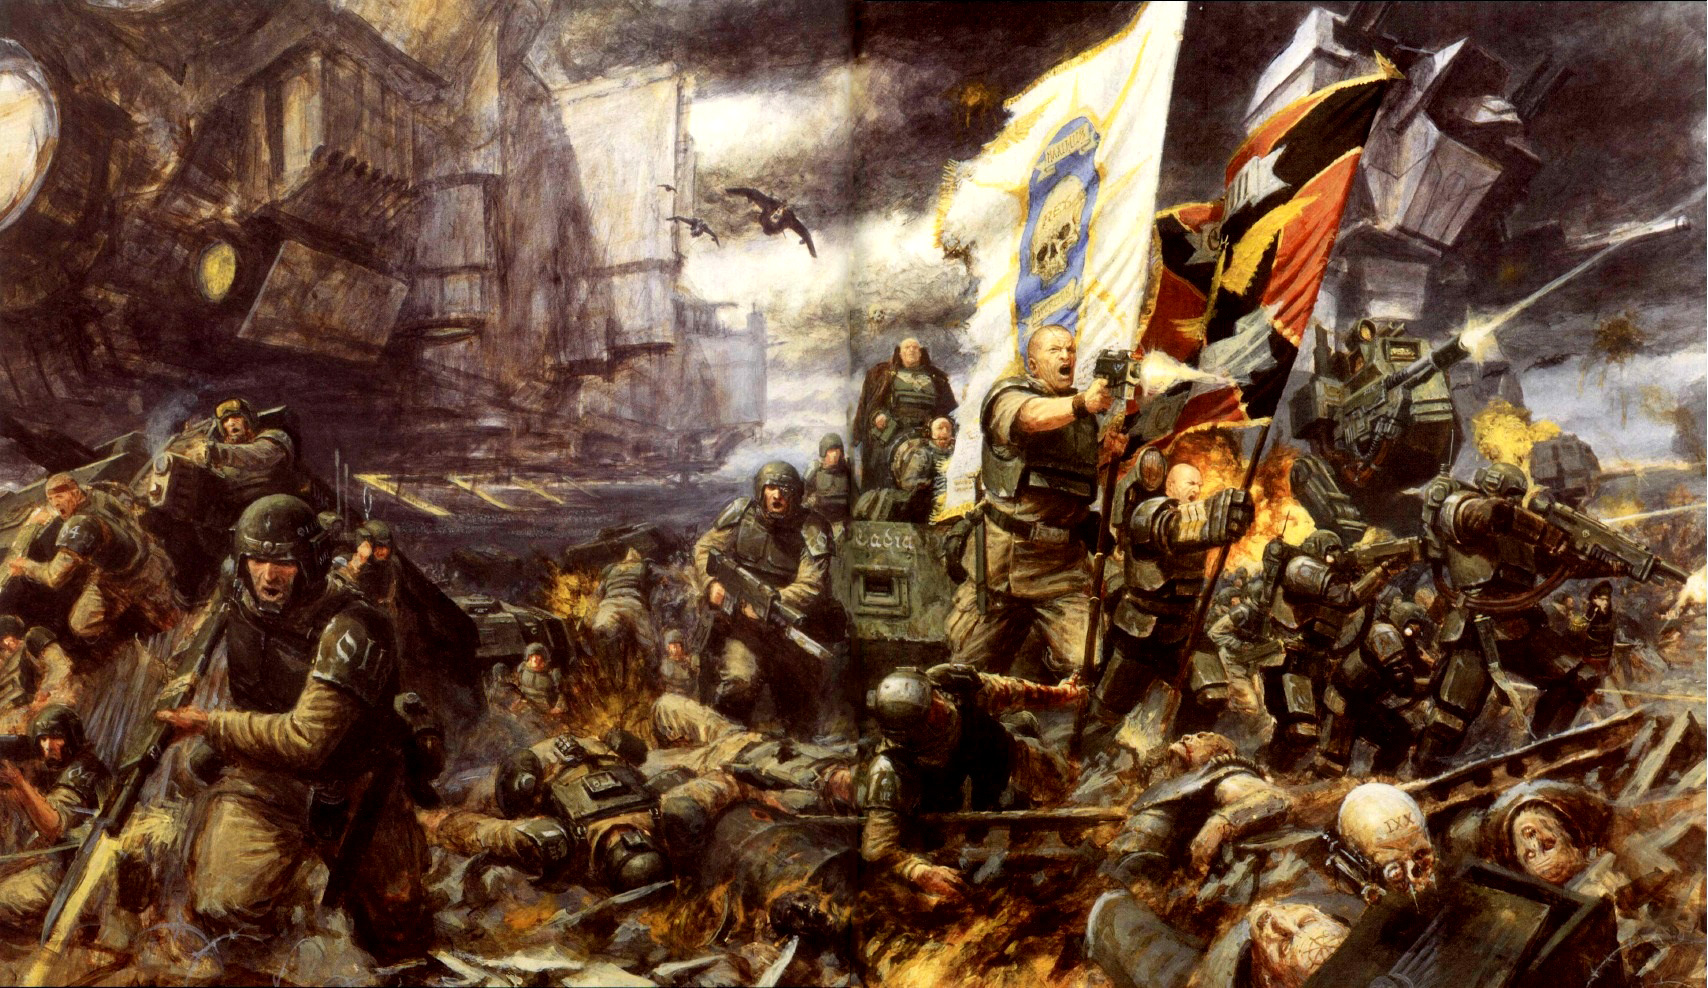 Astra militarum organizational and doctrinal analysis thread 40k the tyrok fields picture fandeluxe Choice Image